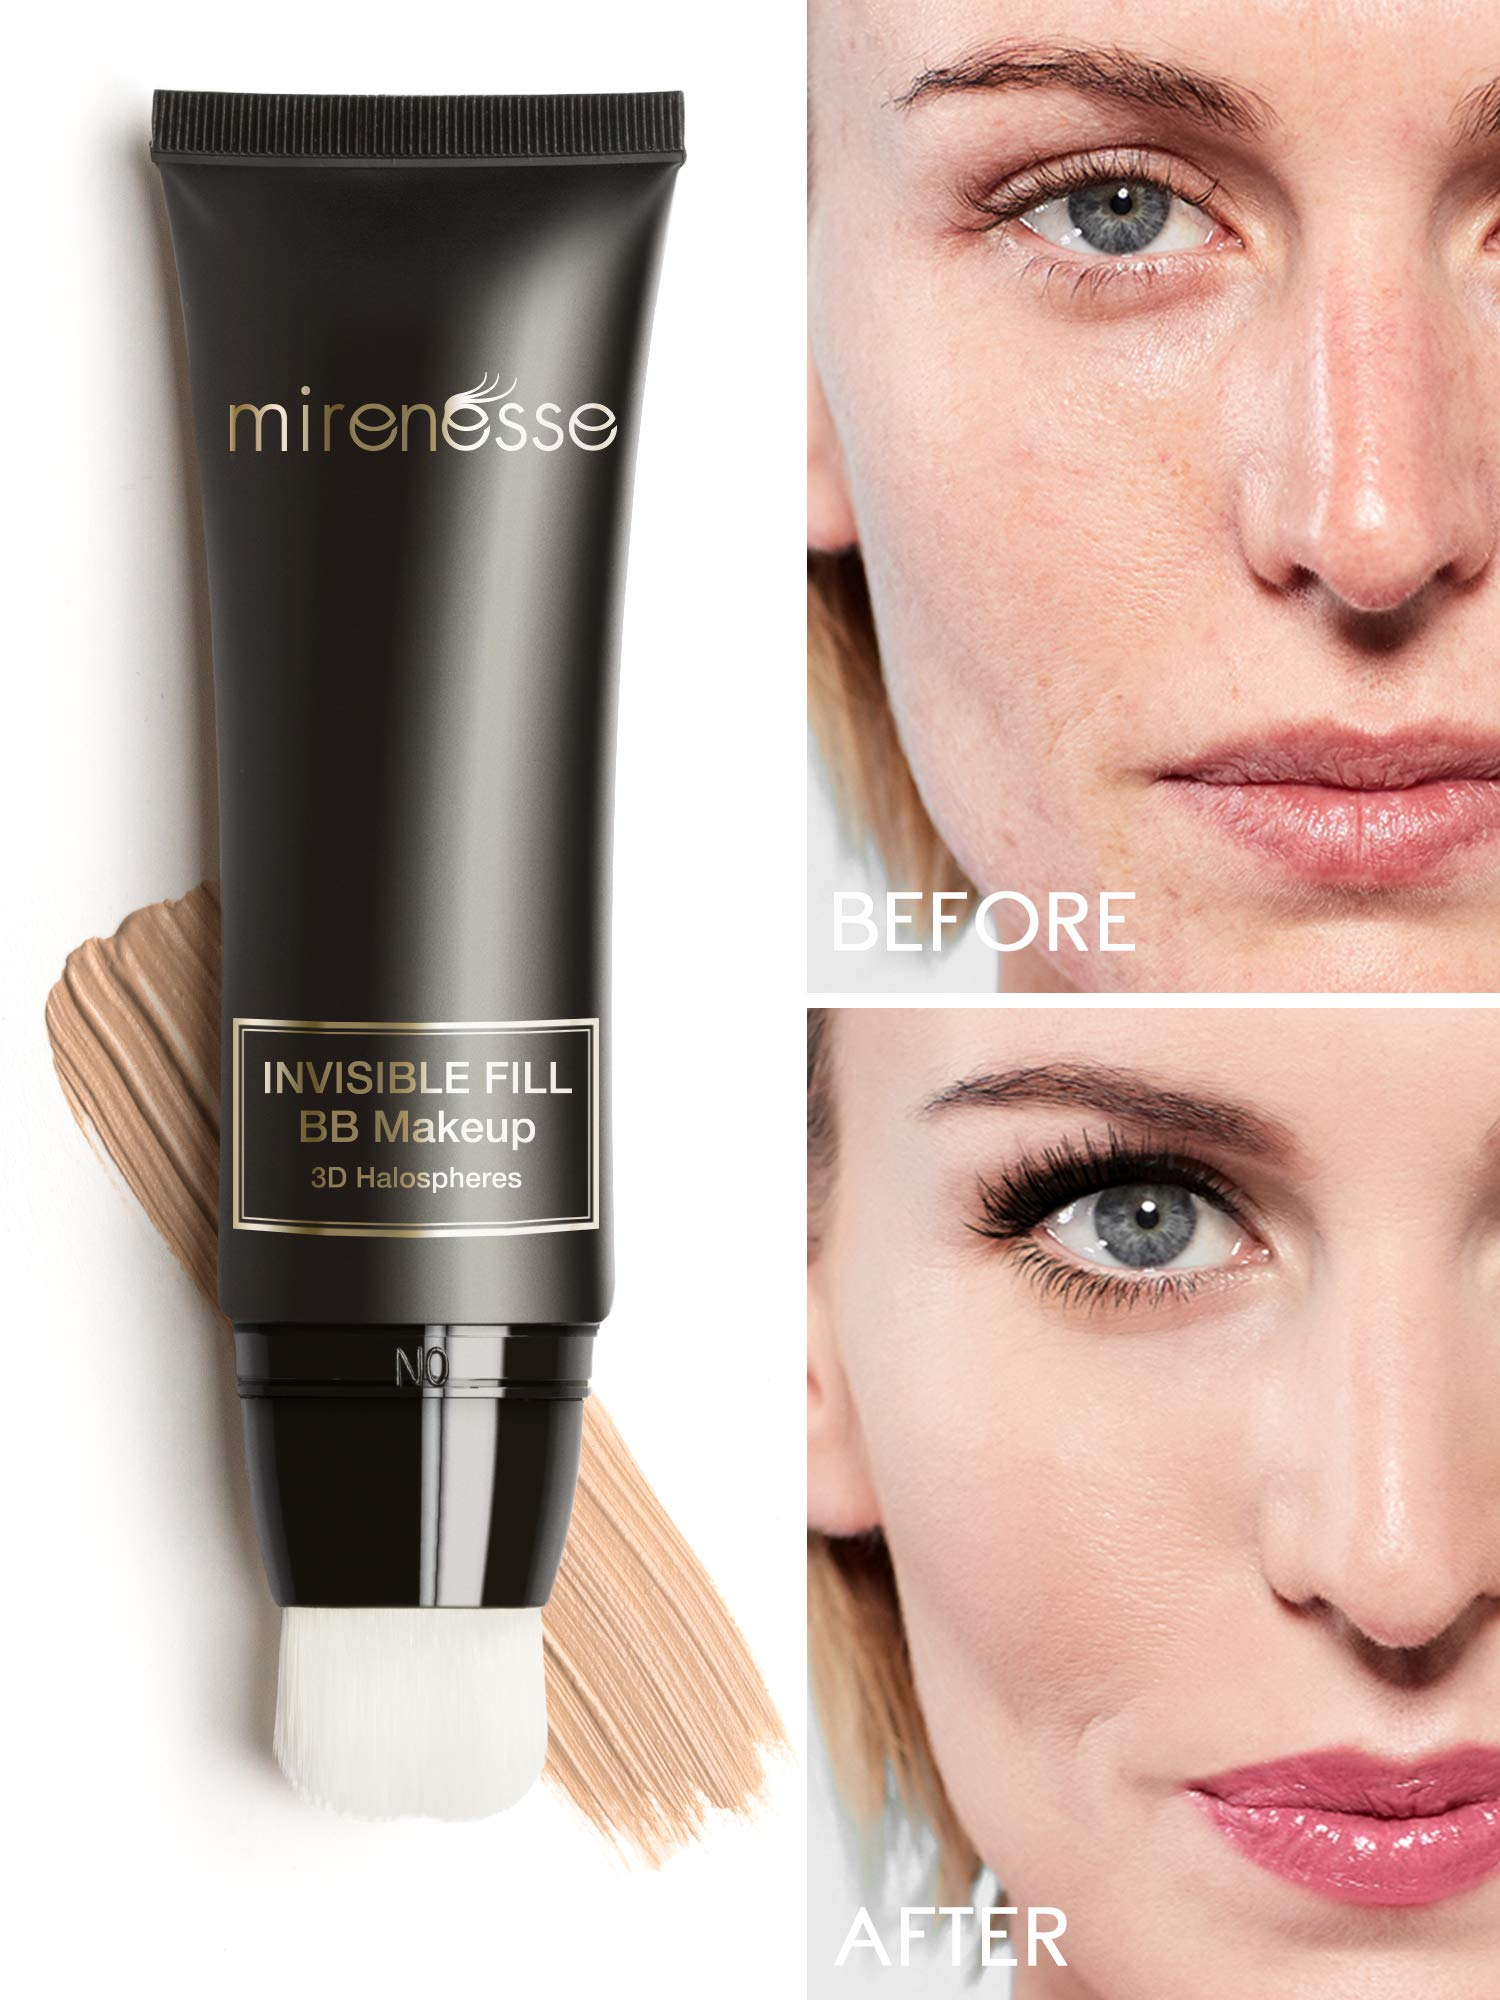 Mirenesse BB Perfect Invisible Fill BB Make Up, Universal Tinted Moisturizer, Primer Airbrush Soft Focus BB Cream, Sensitive Skin Formulation, Vegan & Toxin Free, 1.35oz